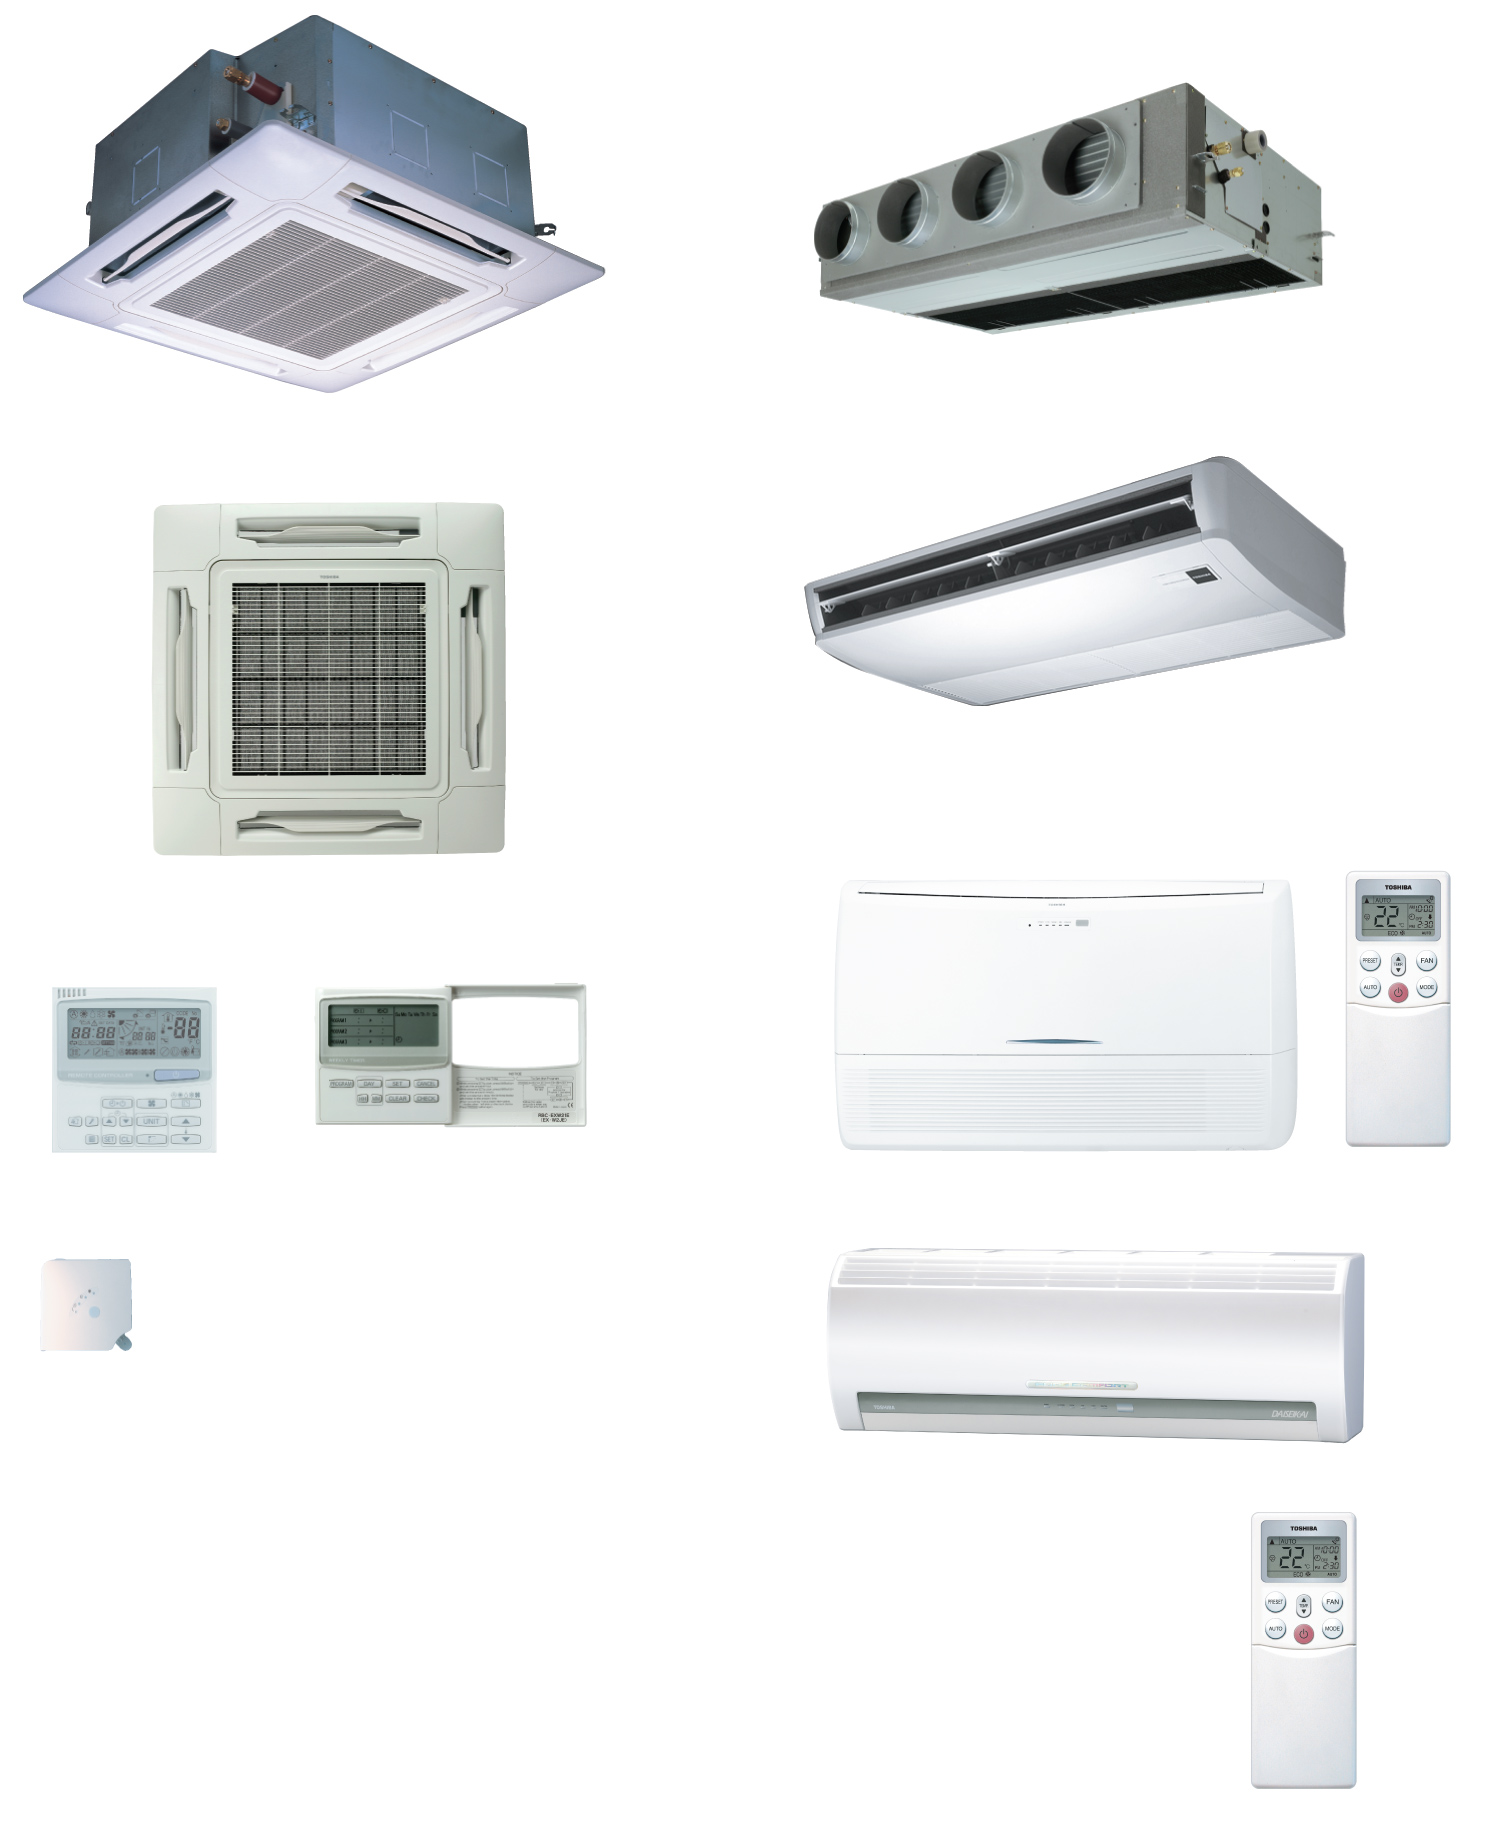 #576074 Air Conditioning Buggy Refrigeration Most Effective 10925 Air Conditioning Types pictures with 1485x1830 px on helpvideos.info - Air Conditioners, Air Coolers and more